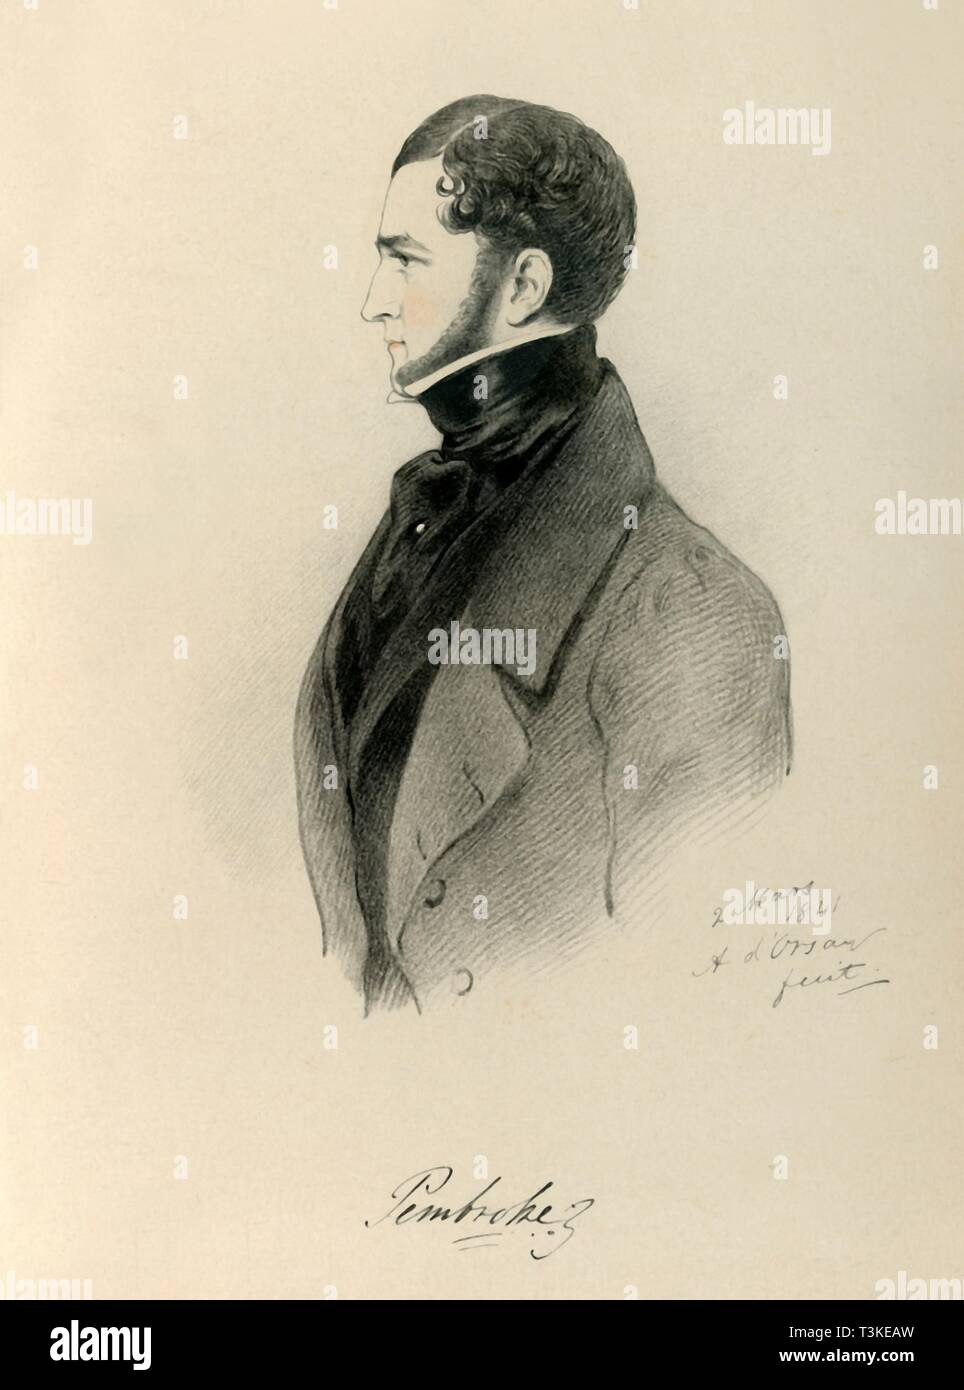 """'Pembroke', 1841. Portrait of British peer Robert Henry Herbert, 12th Earl of Pembroke (1791-1862). From """"Portraits by Count D'Orsay"""", an album assembled by Lady Georgiana Codrington. [1850s] - Stock Image"""